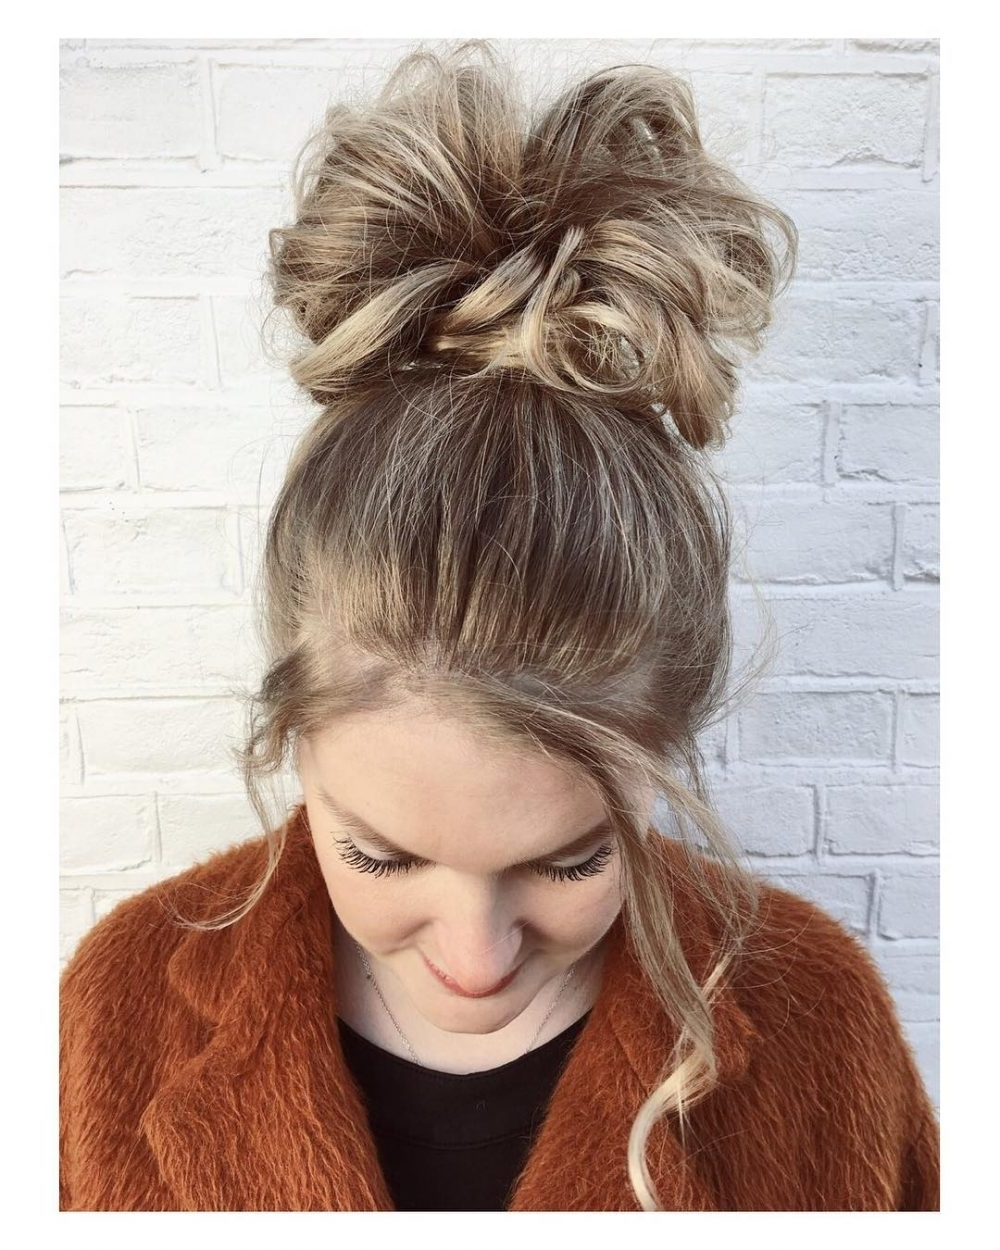 34 Easy Updos For Long Hair Trending For 2018 Within Easy Long Updo Hairstyles (View 4 of 15)